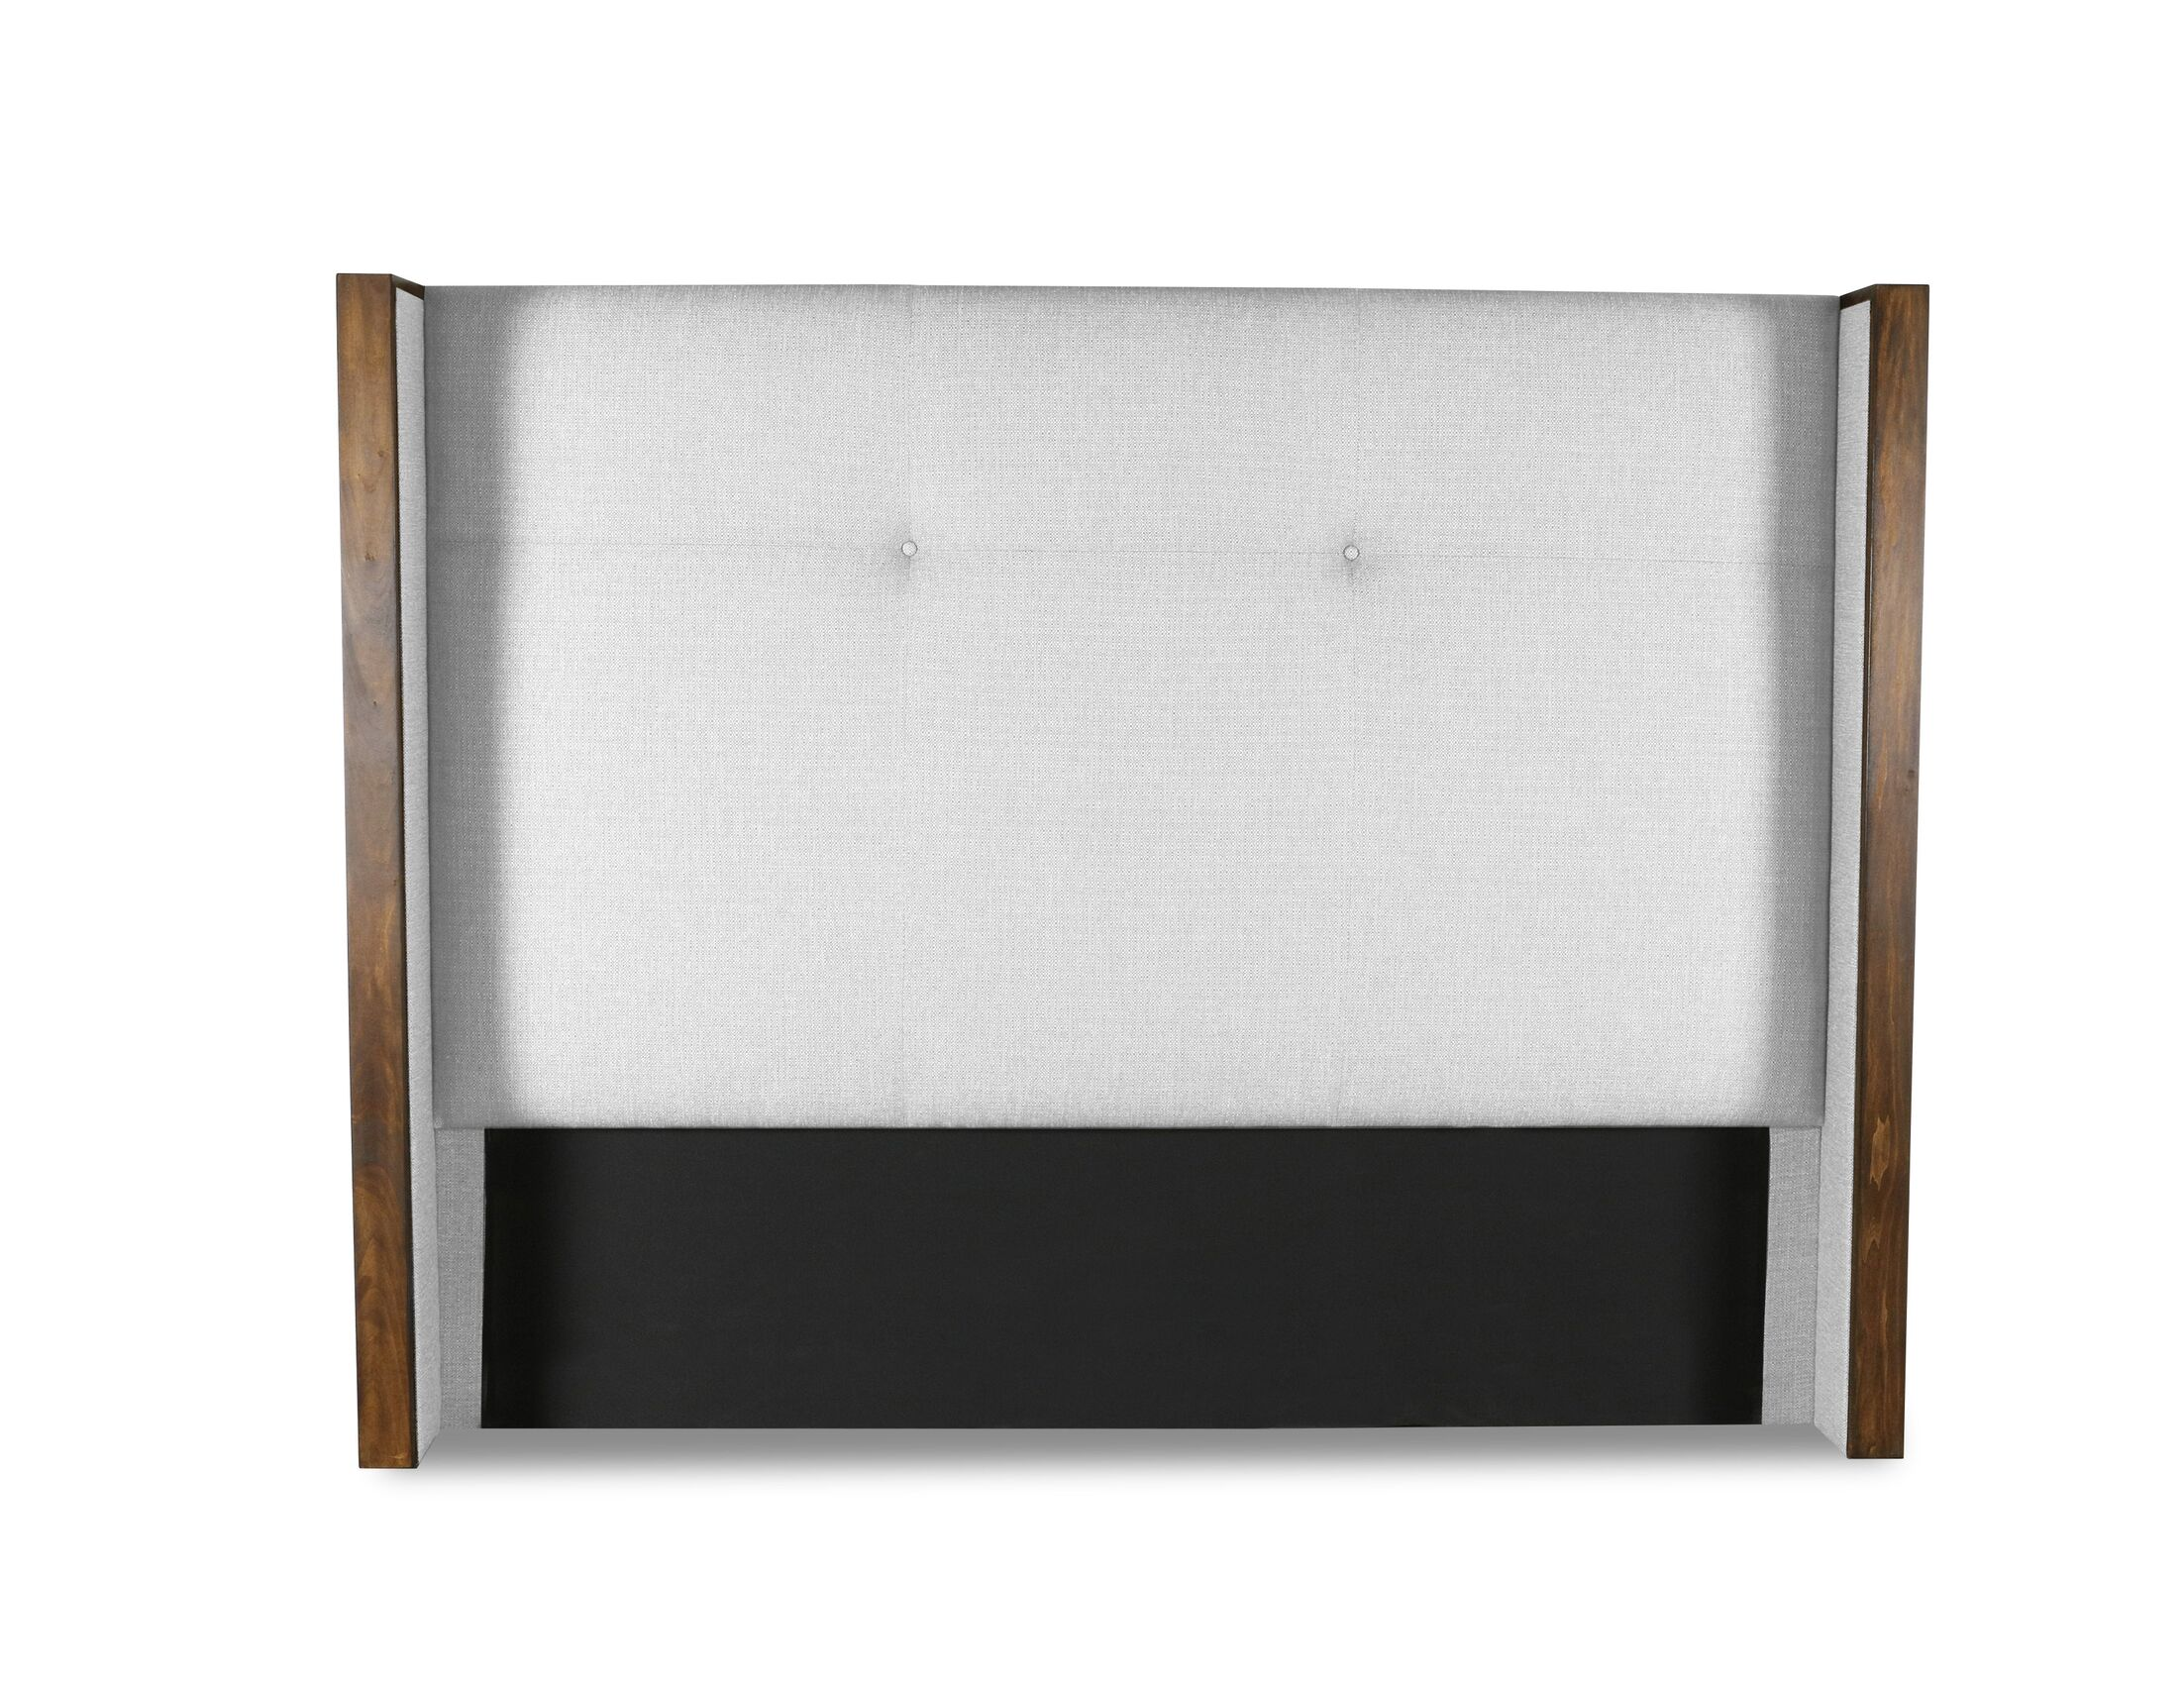 Hank Simple Tufted Upholstered Wingback Headboard Size: Mid Height King, Color: White